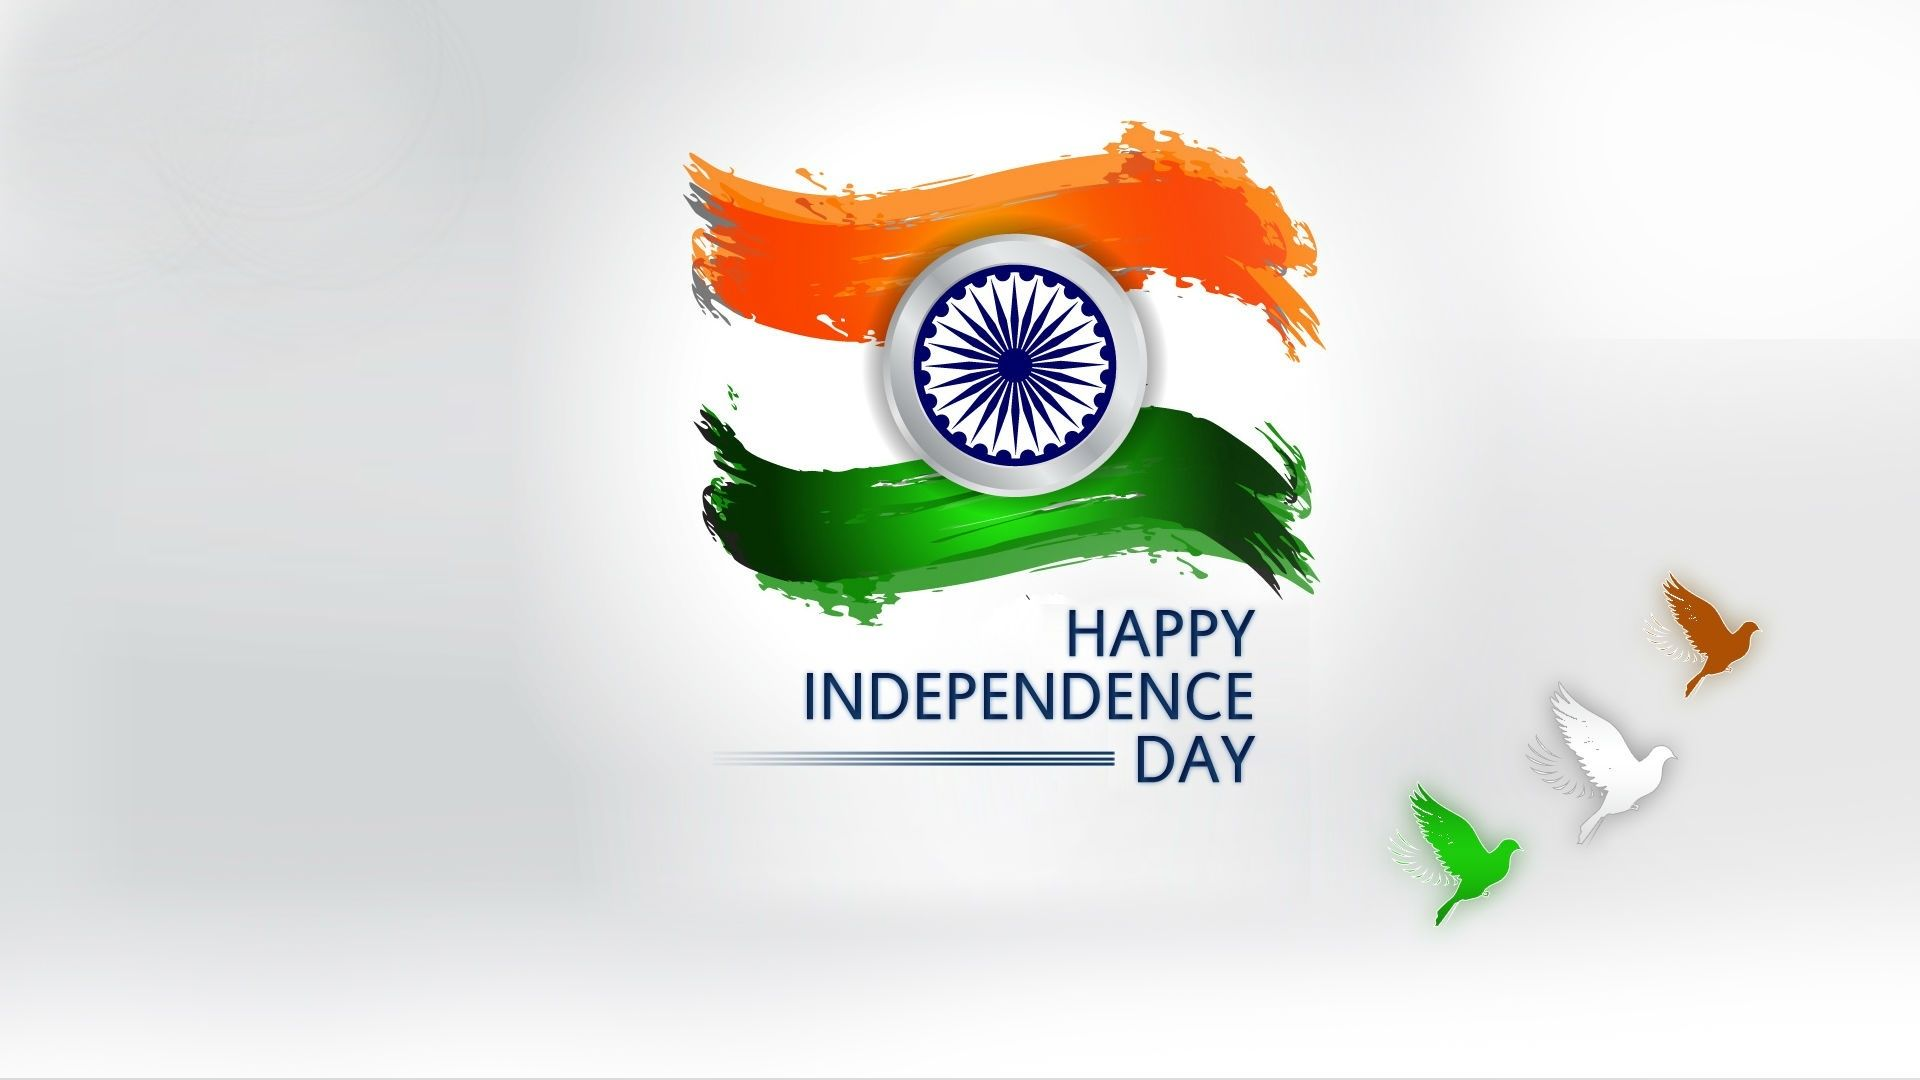 Happy Independence Day 2020 Images – 15 August HD Image, Photos, Wallpaper Free Download